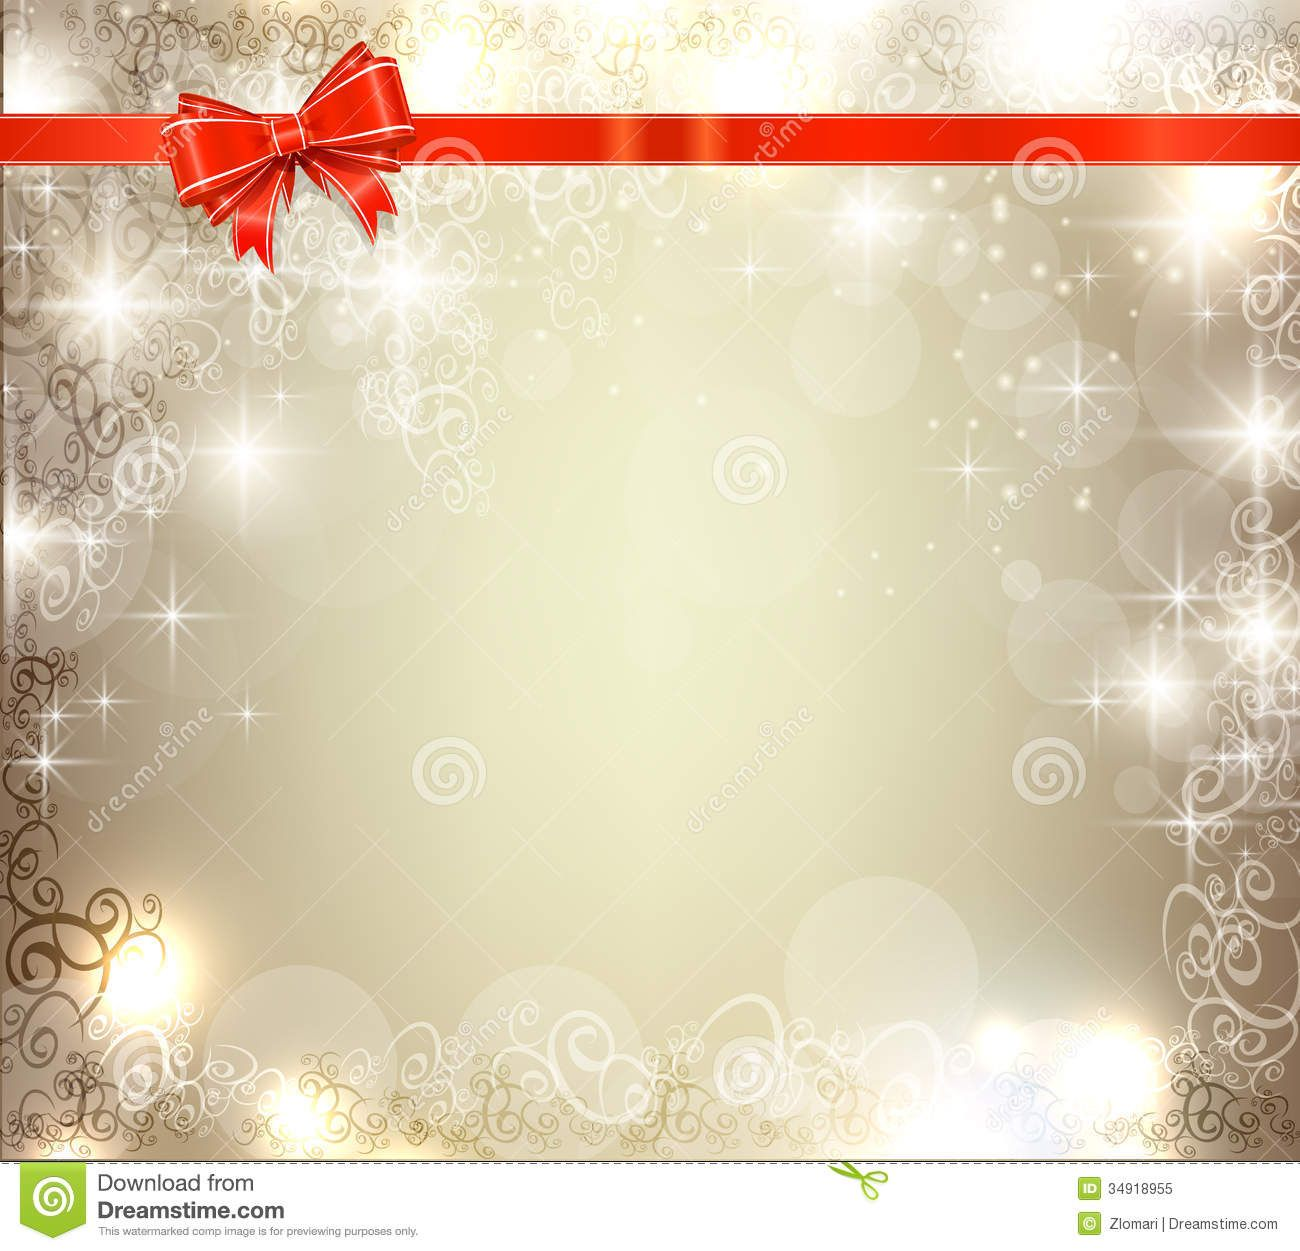 Holiday free backgrounds archives motion backgrounds for free art